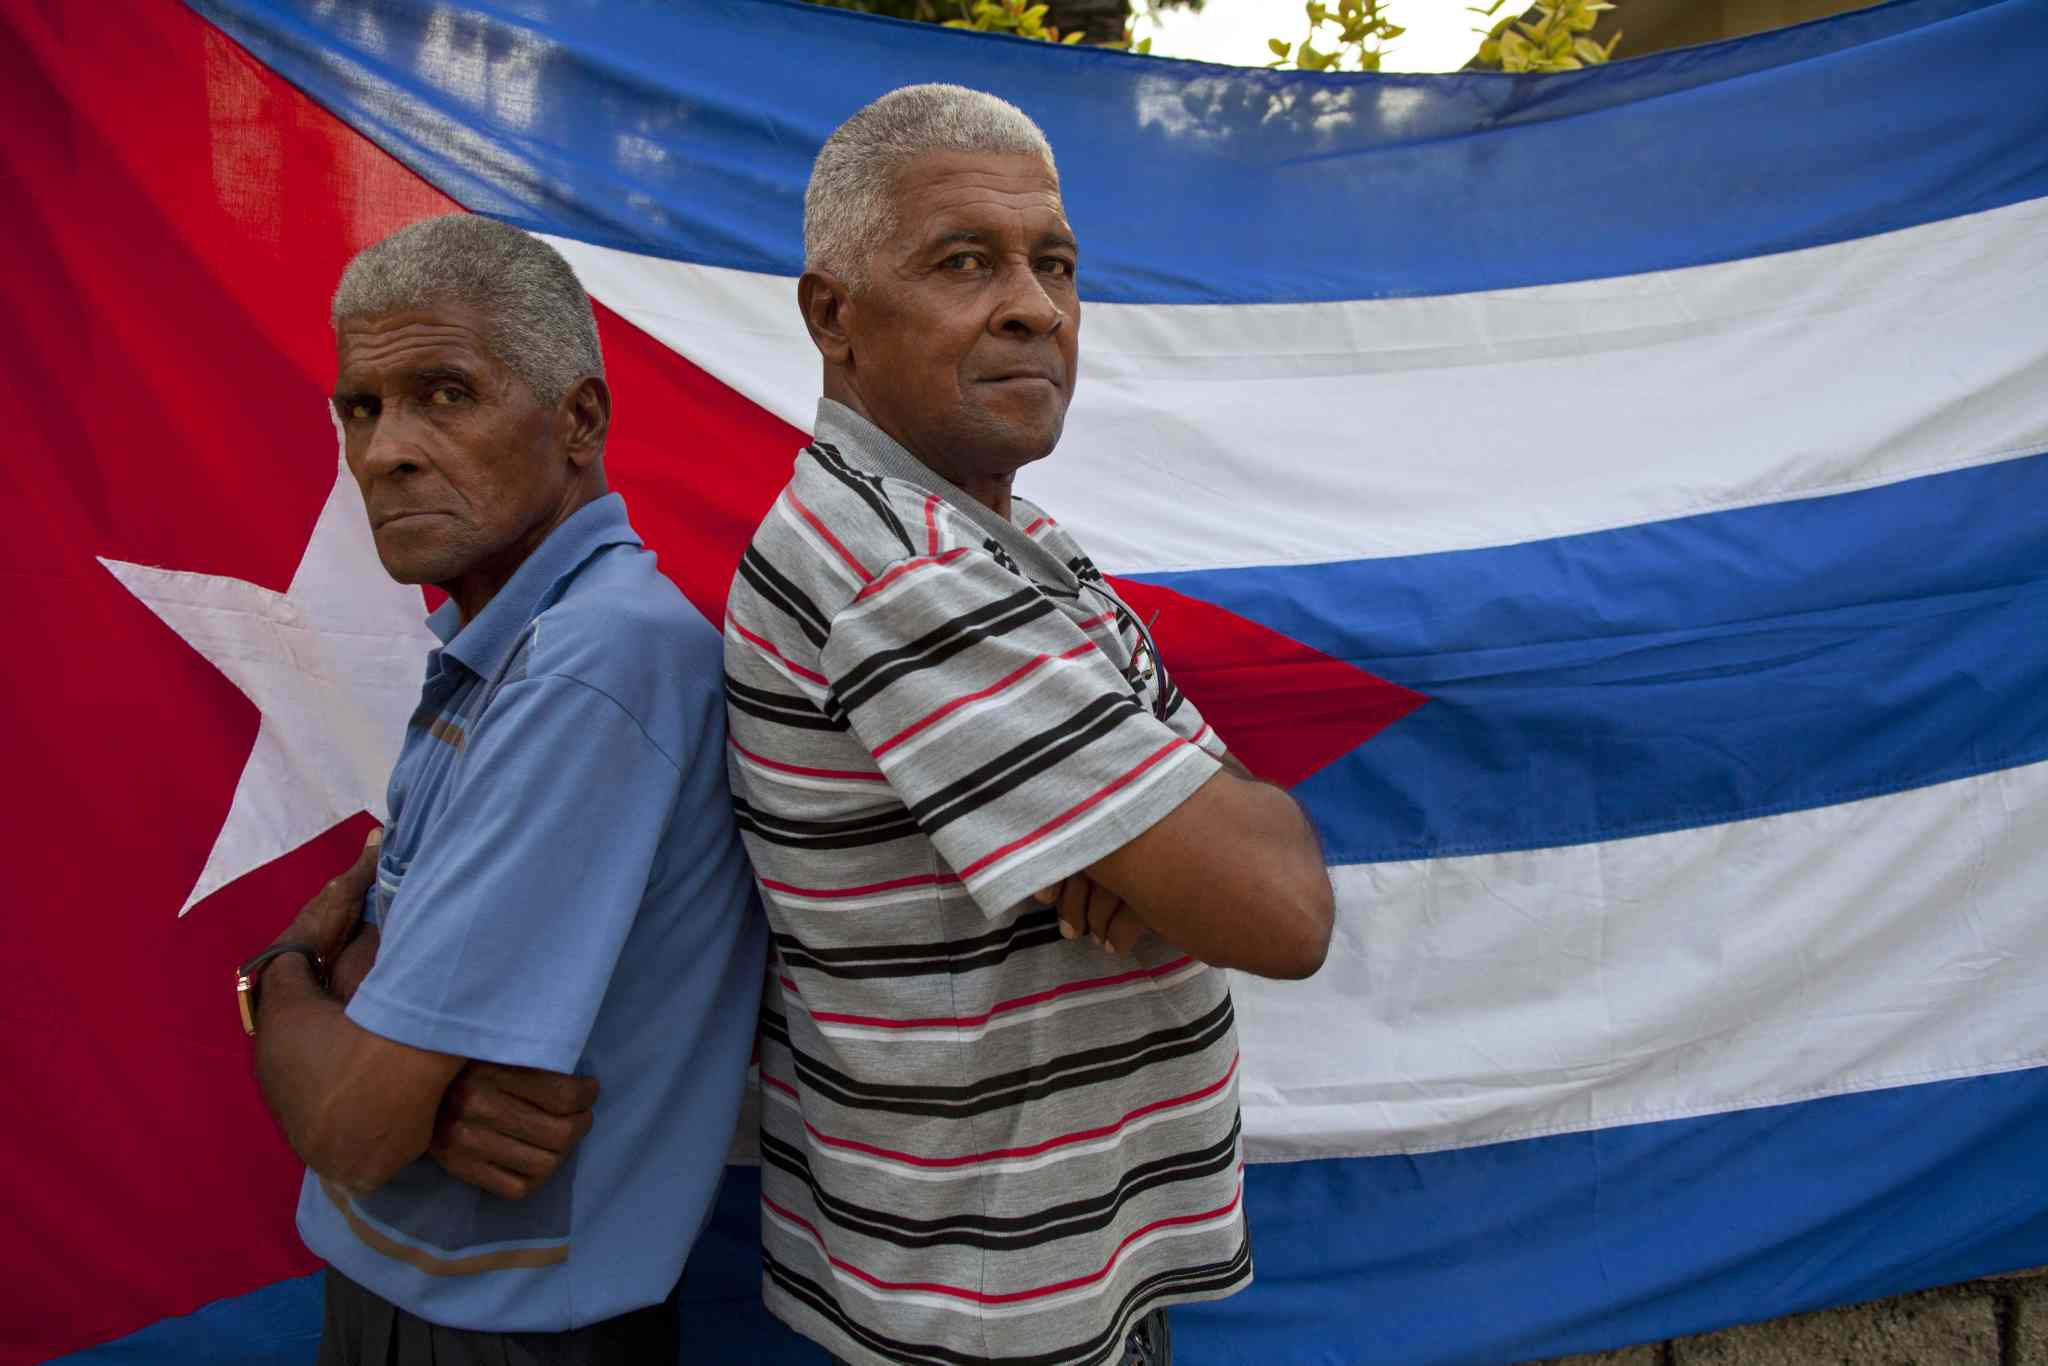 Twins Orlando Gonzalez, left, and Roberto Gonzalez pose for a portrait in front a Cuban flag along their street in Havana, Cuba.